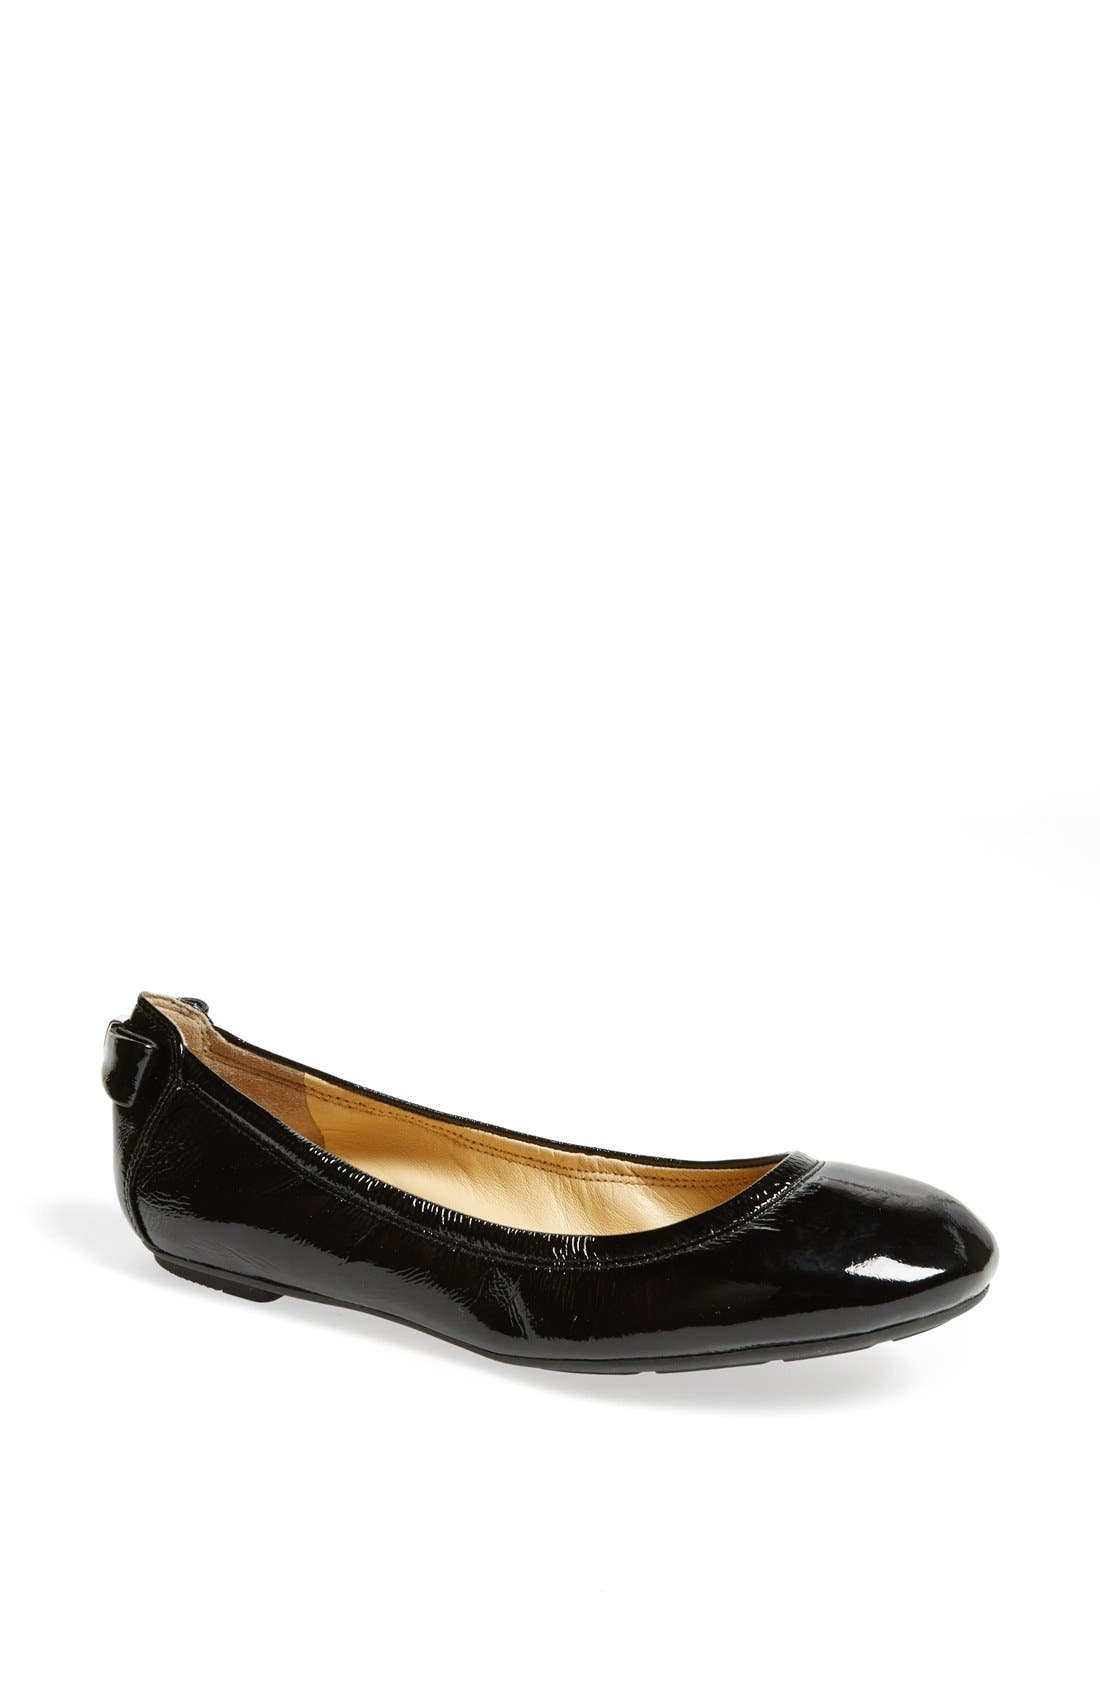 Main Image - Cole Haan 'Manhattan' Waterproof Ballet Flat